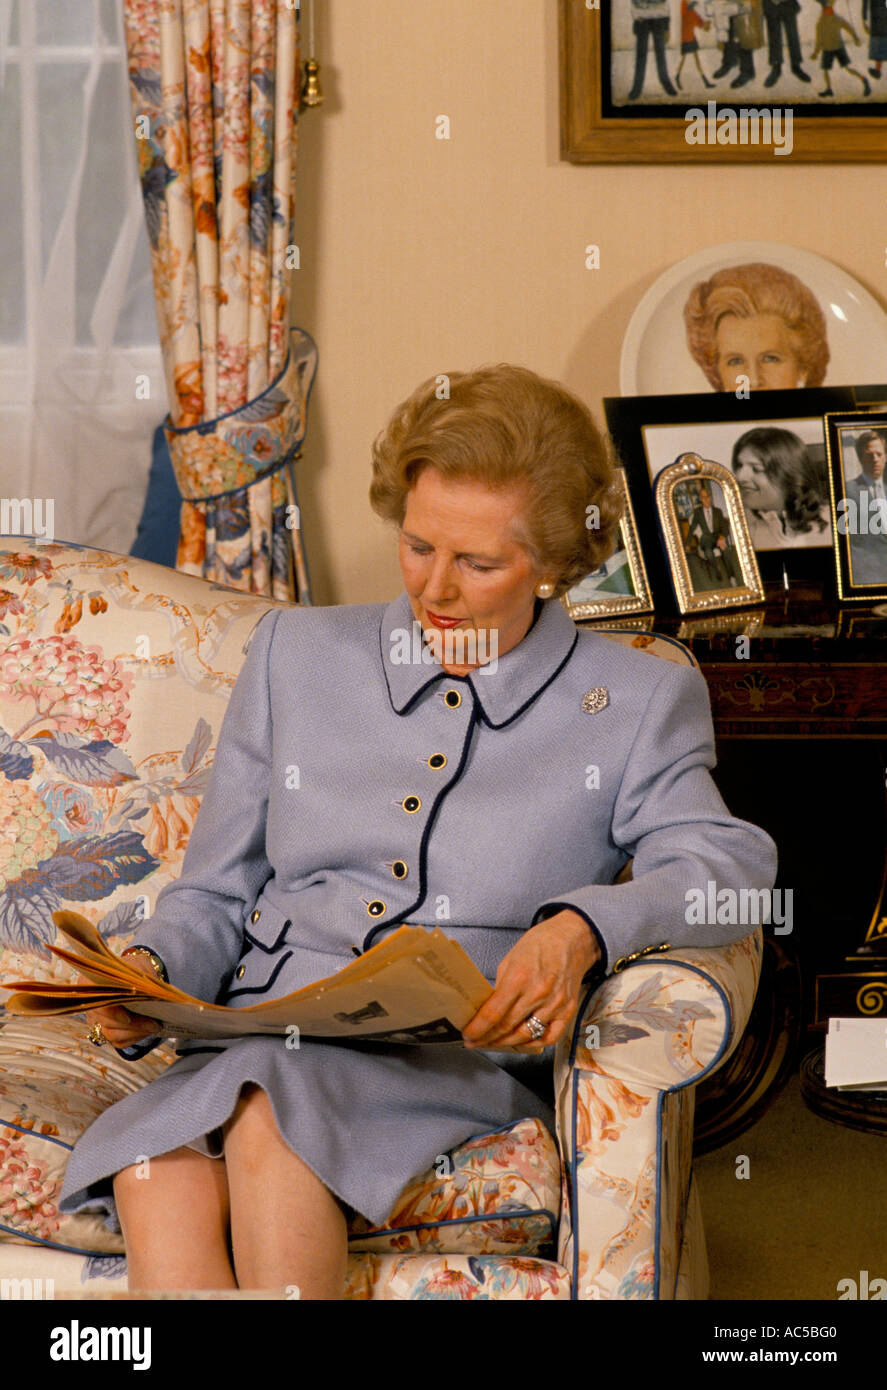 THATCHER DOWNING STREET MARGARET THATCHER SAT IN THE LIVING ROOM READING A BOOK 1989 - Stock Image